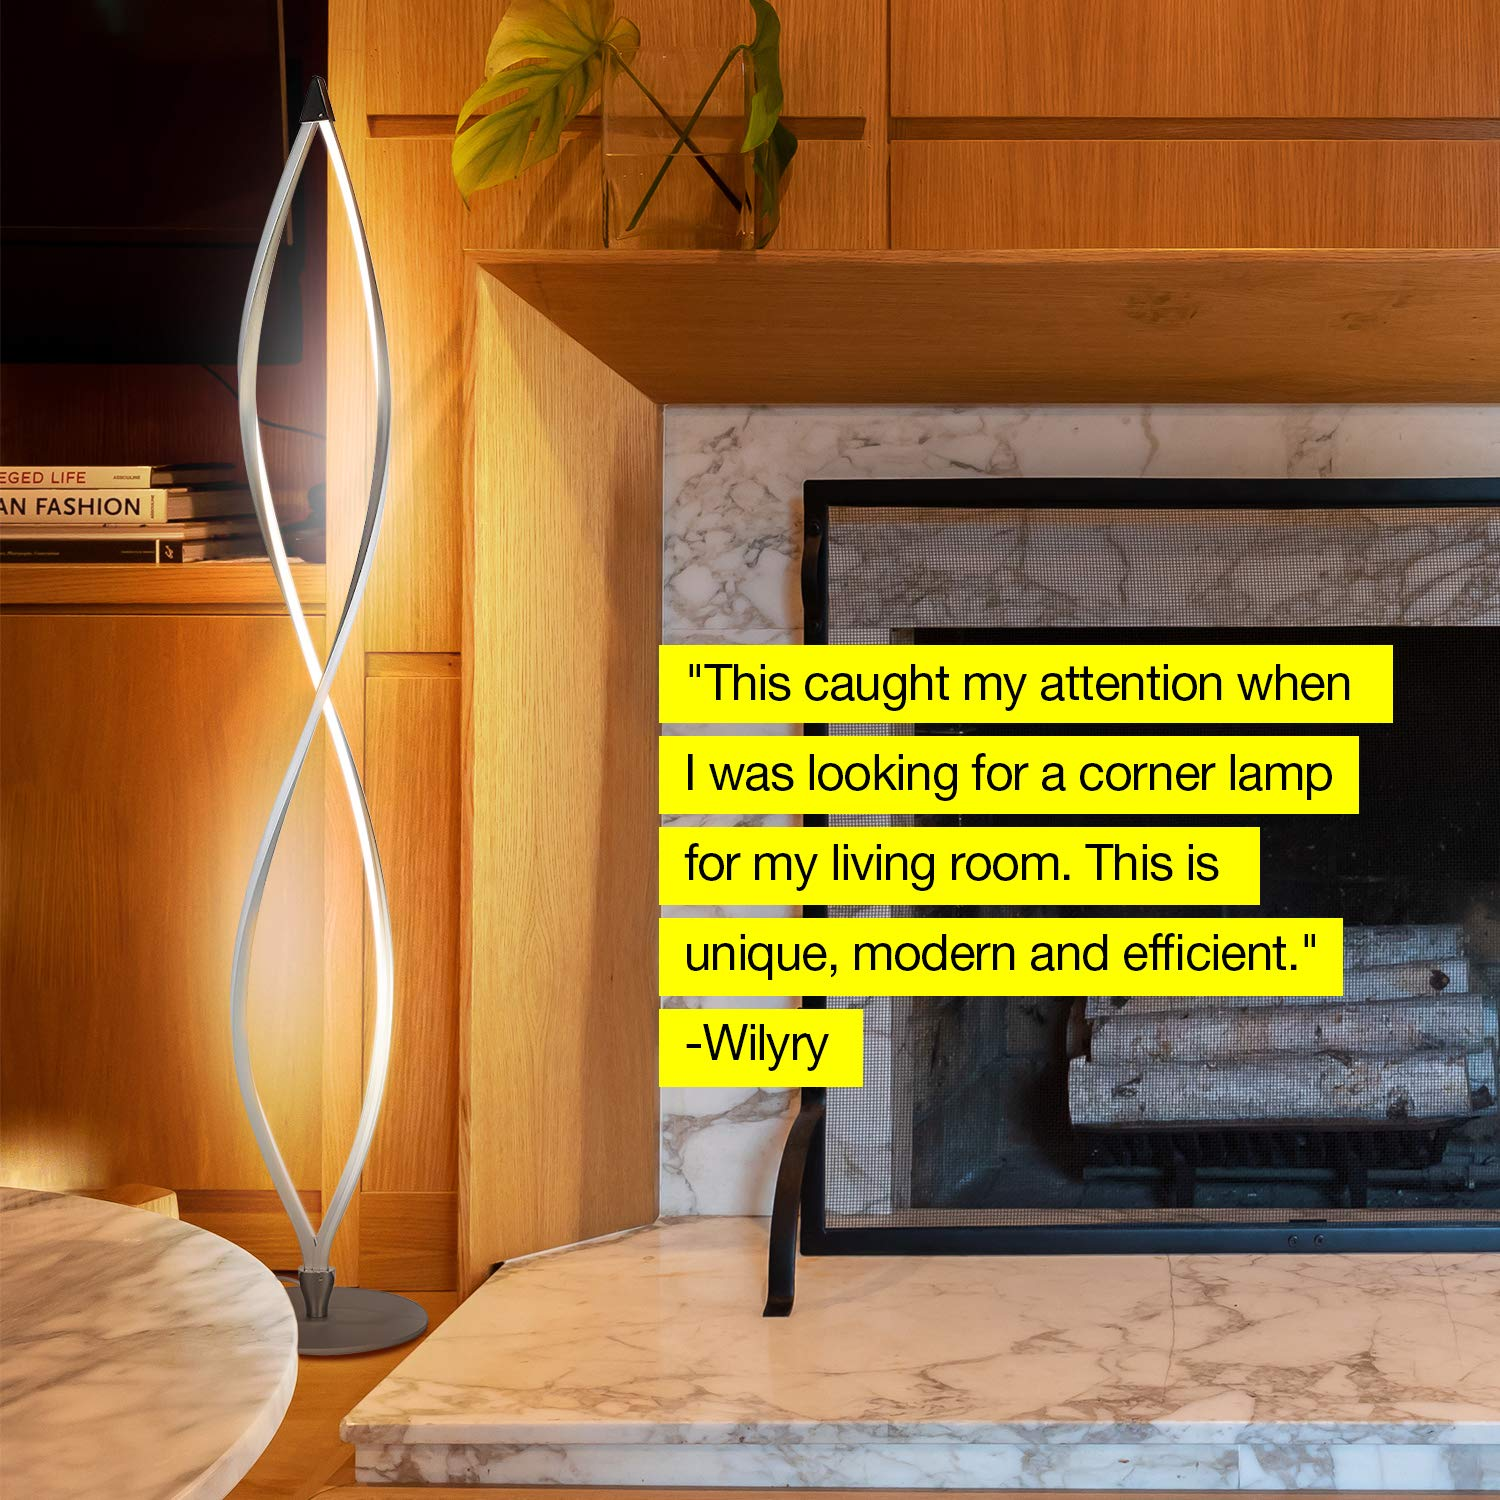 Brightech Twist - Modern LED Living Room Floor Lamp - Bright Contemporary Standing Light - Built in Dimmer Switch with 3 Brightness Settings - Cool, Futuristic Lighting - Silver by Brightech (Image #9)